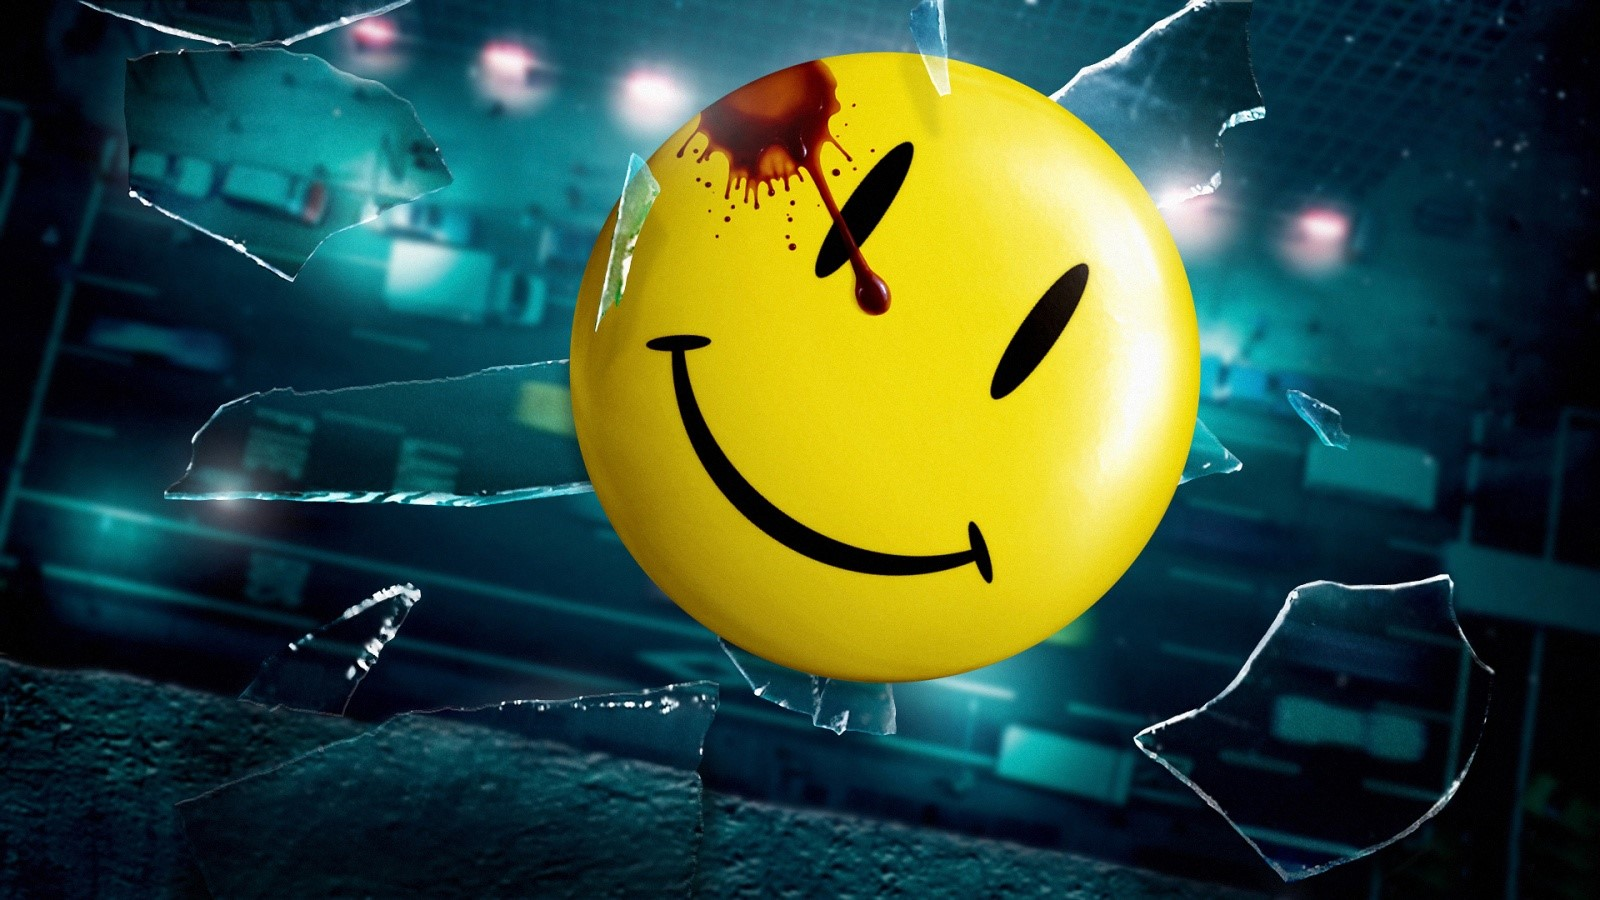 Fondos de pantalla Watchmen smiley